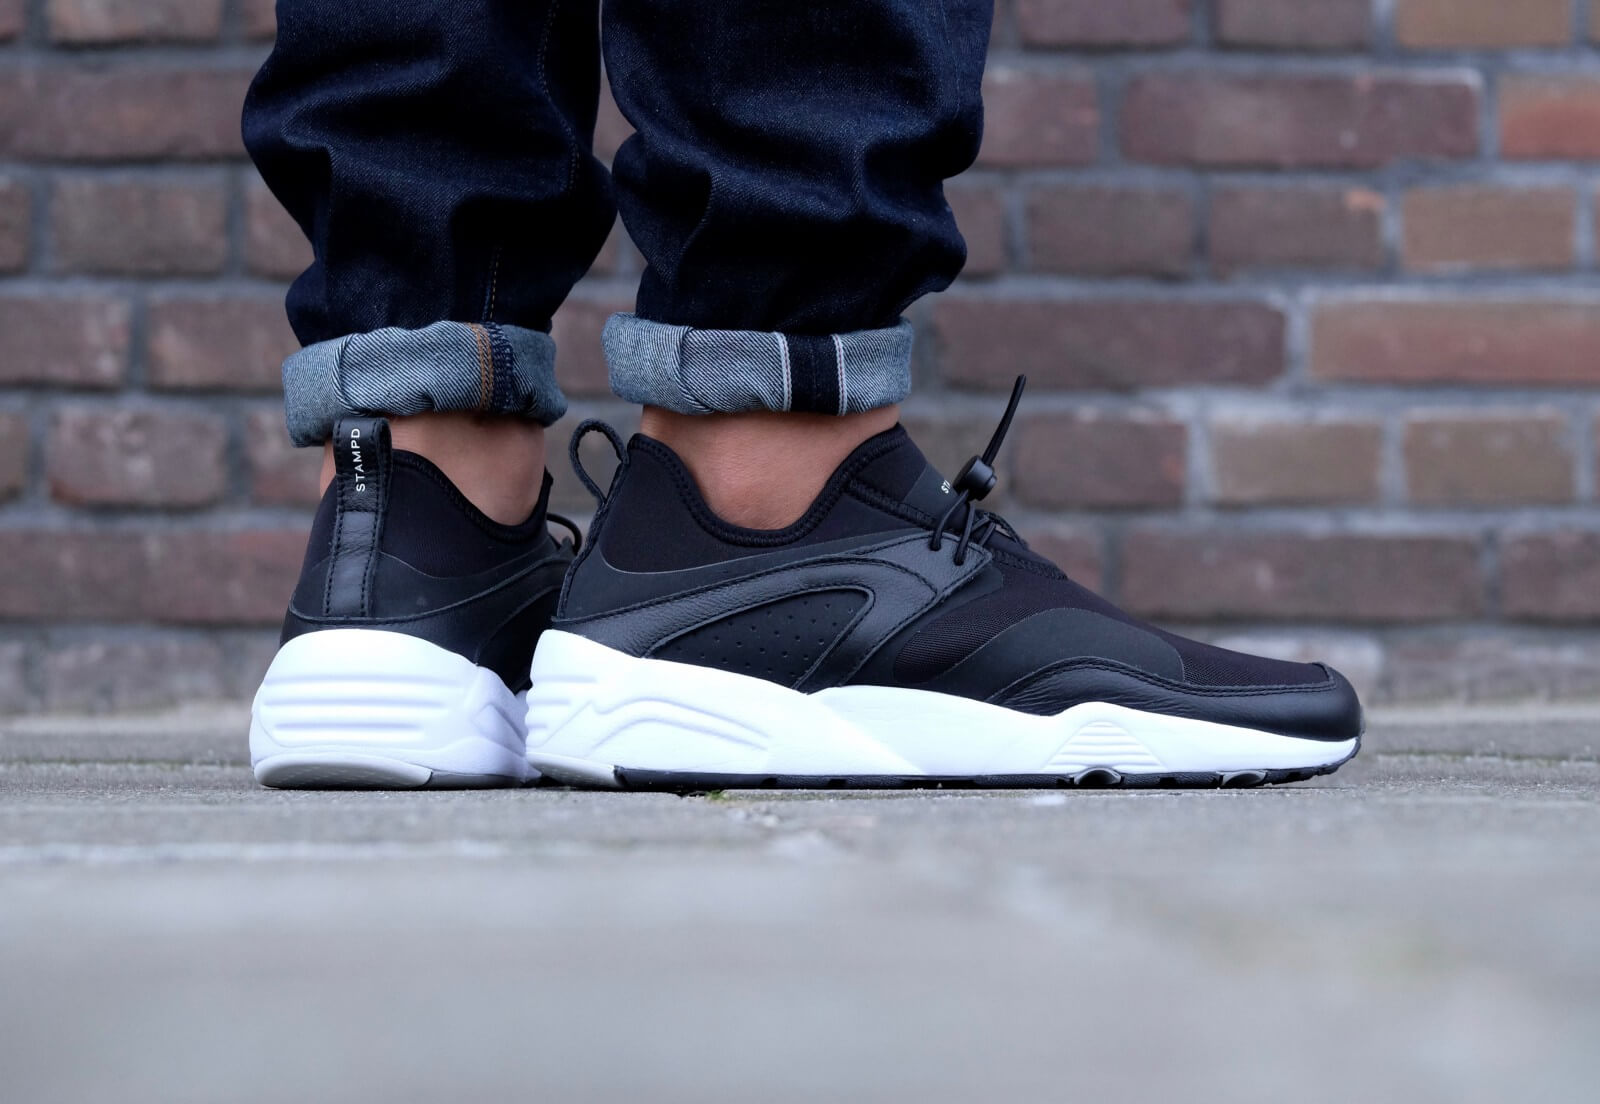 Puma Blaze of Glory NU x Stampd Black Puma White 0361493 02